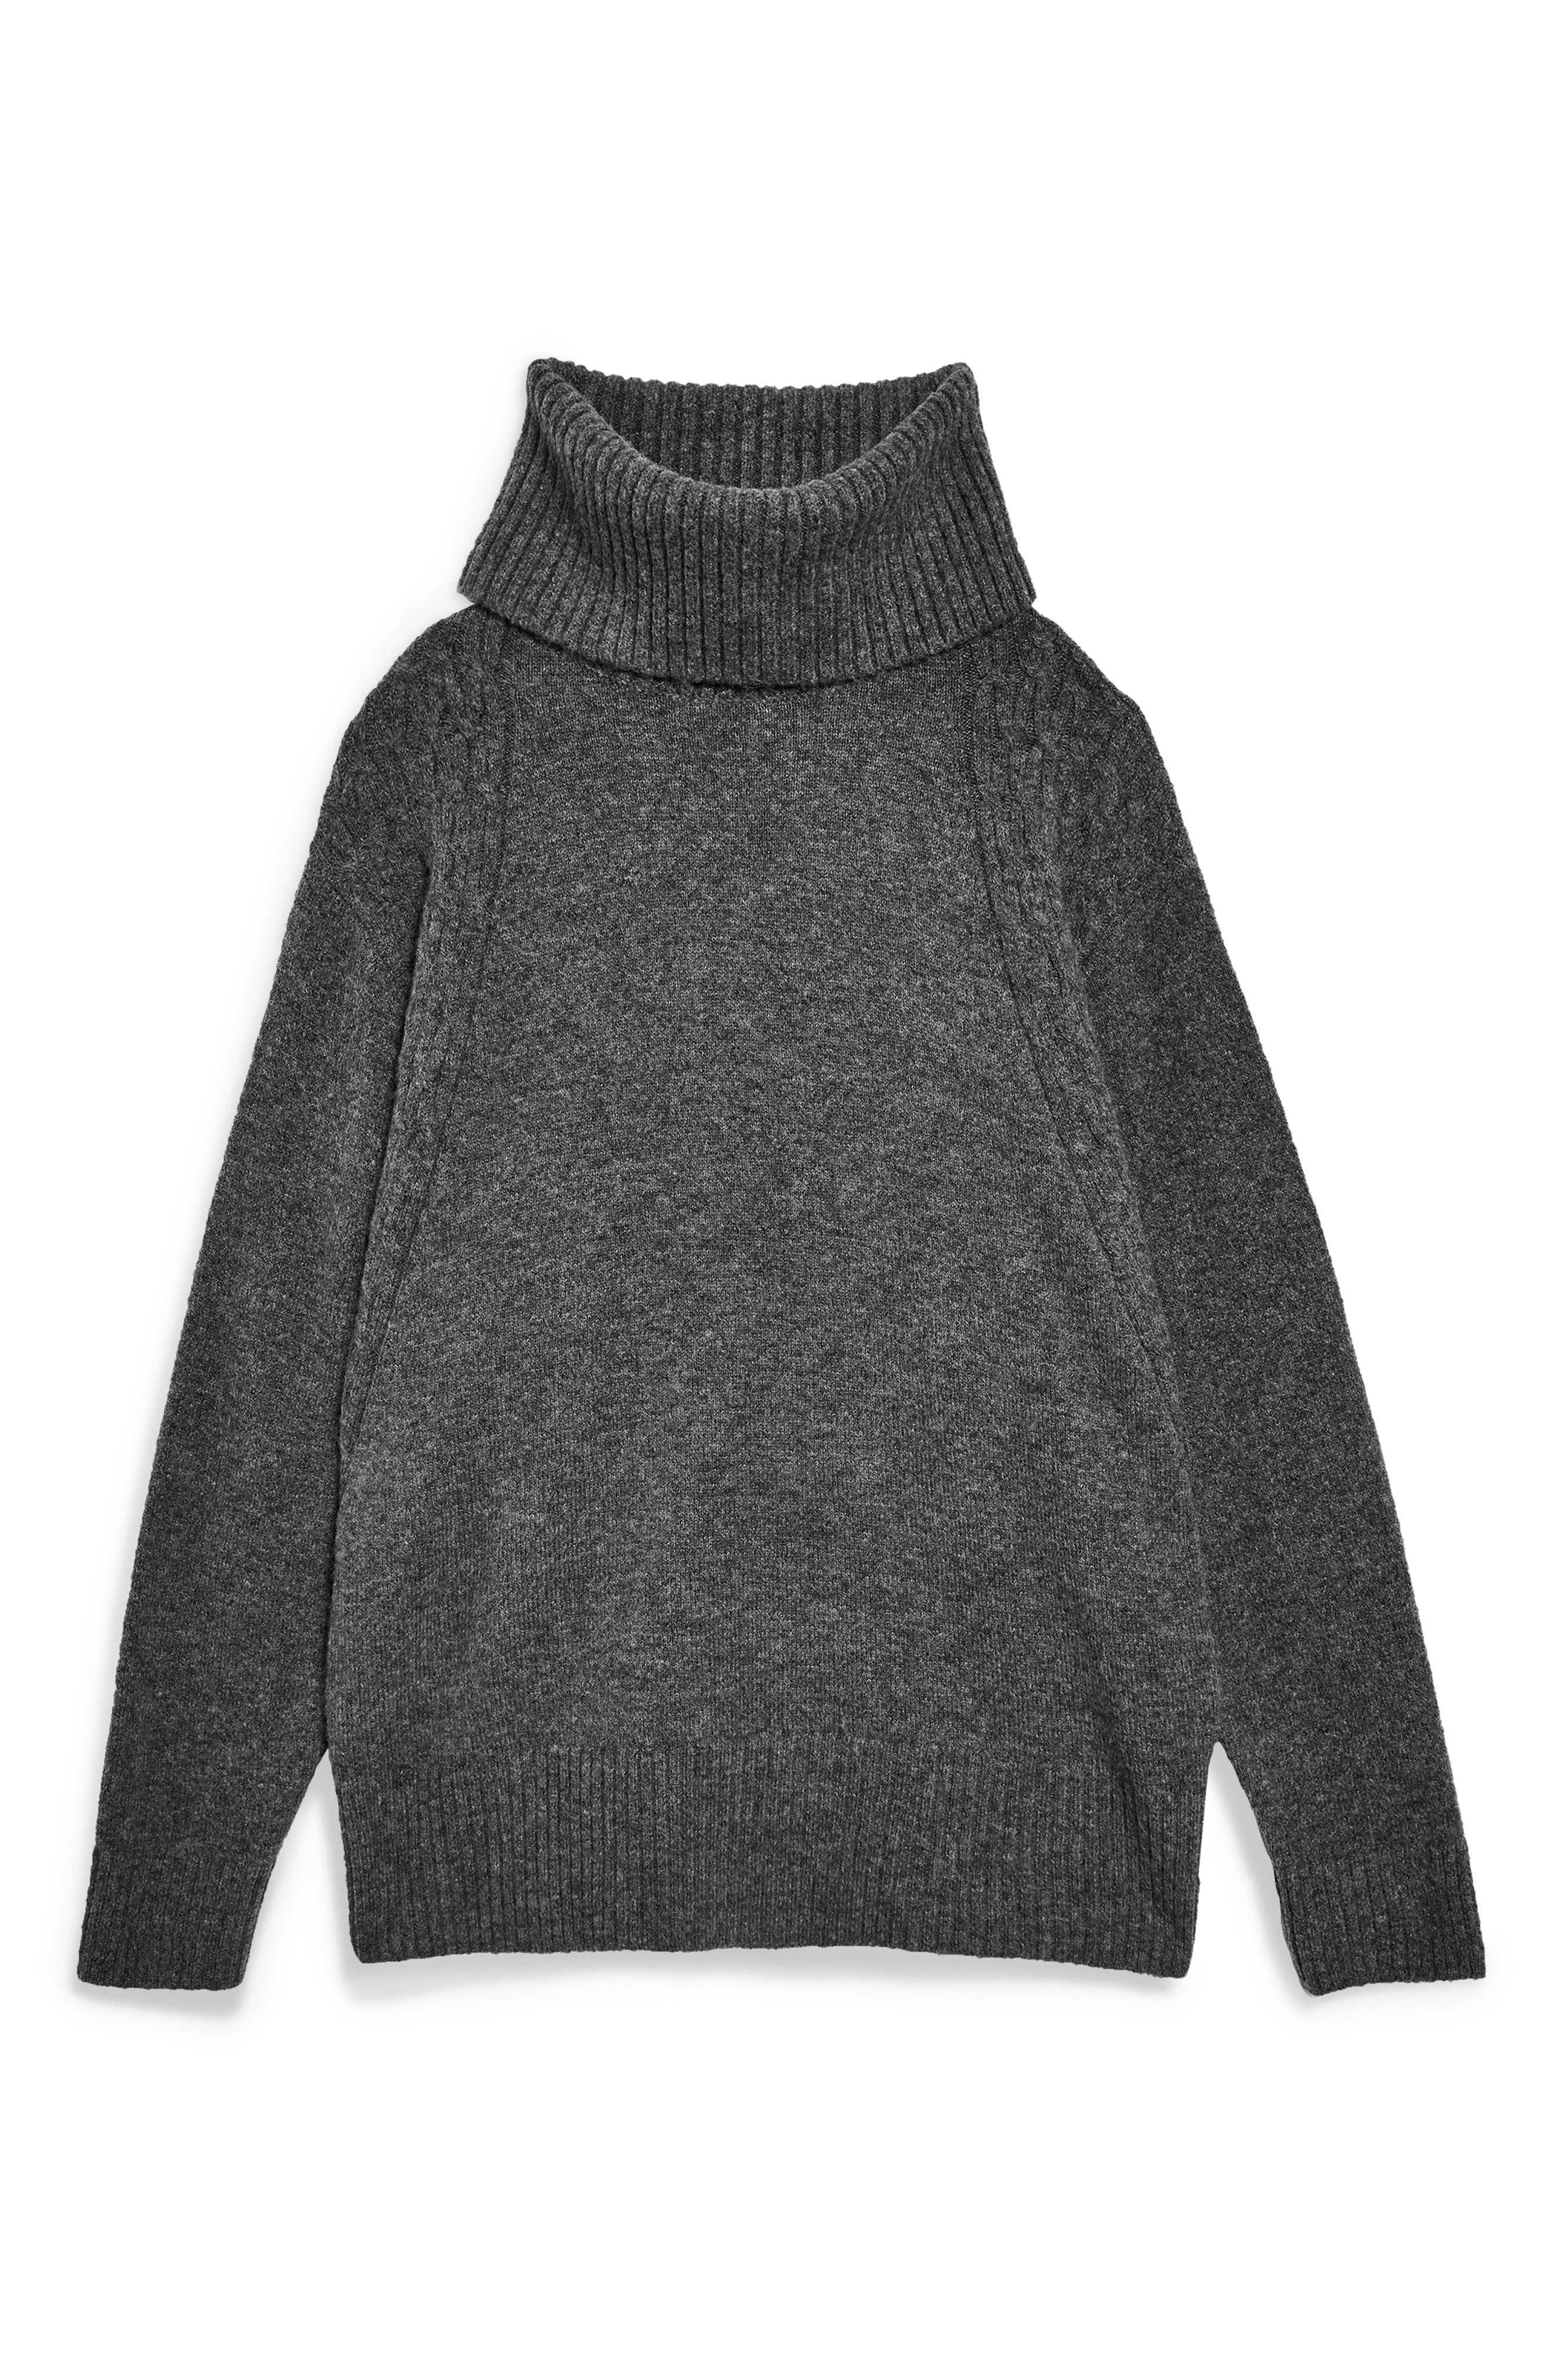 TOPSHOP,                             Turtleneck Sweater,                             Alternate thumbnail 3, color,                             CHARCOAL